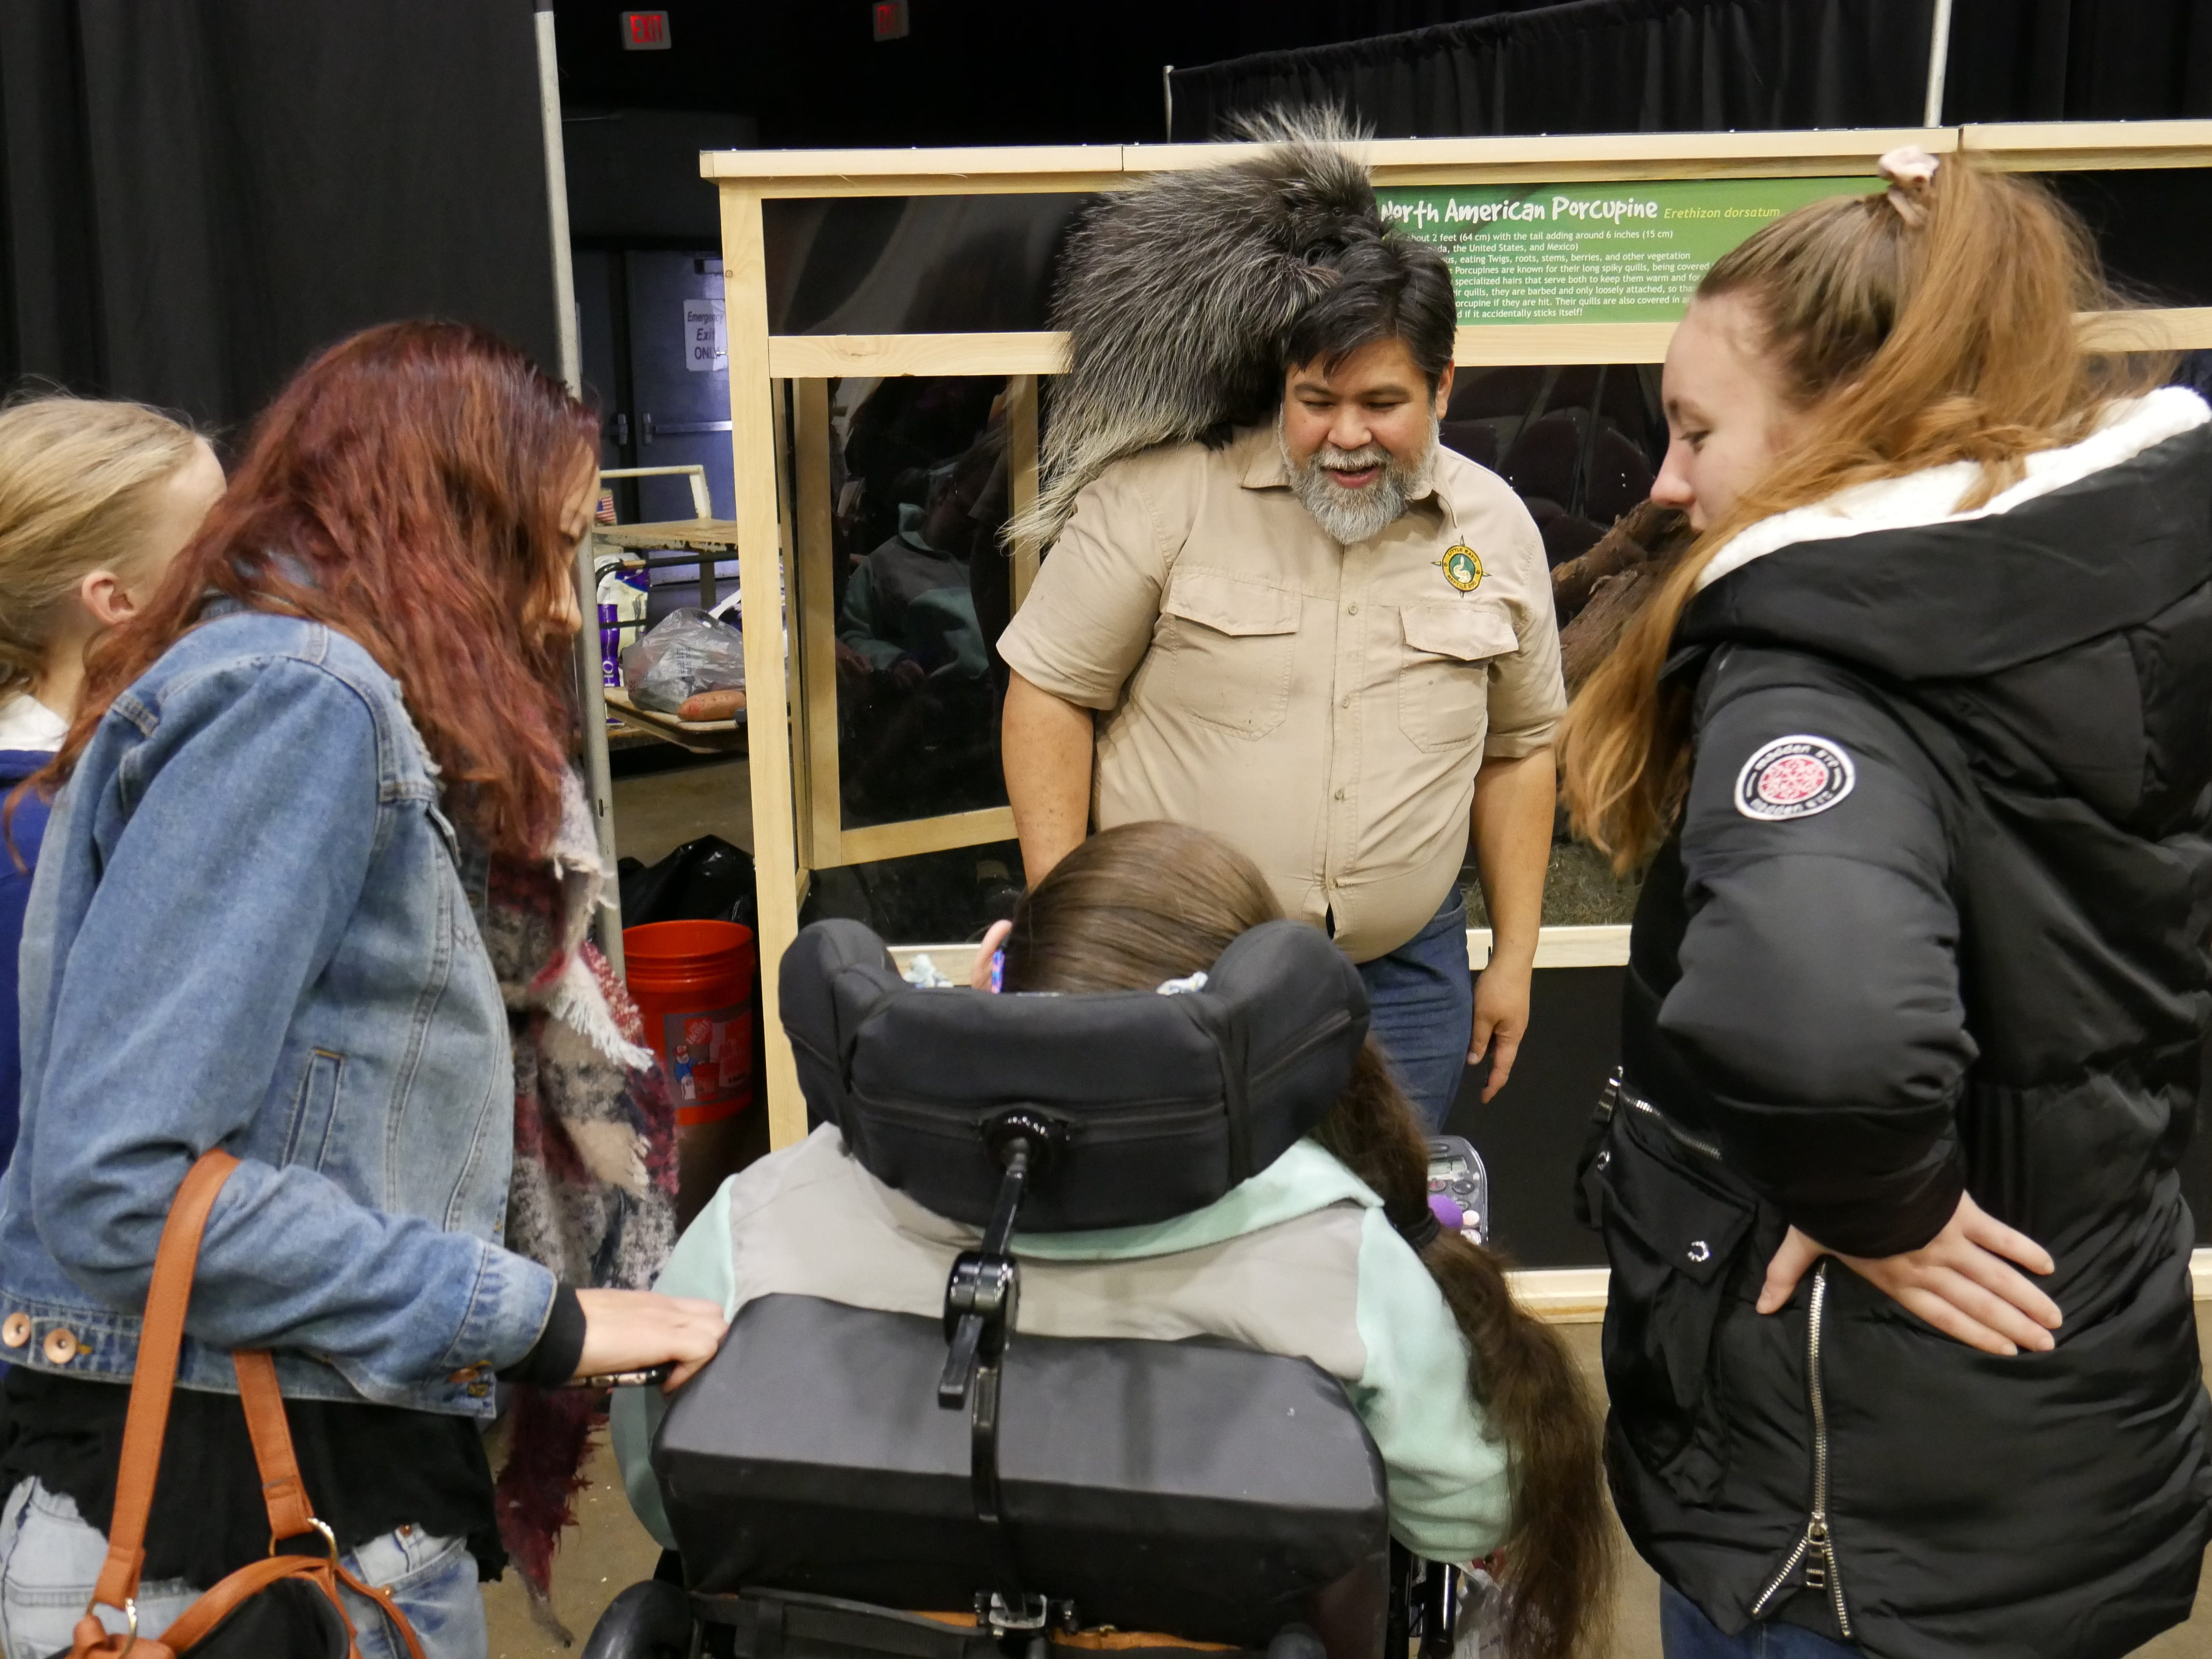 The Malone family watches Andre Ngo of Little Ray's Nature Centers interact with Quilber Thistlebeaver III at the Natural History Exhibition on Nov. 17, 2018. Little Ray's Nature Centers and ZooAmerica coordinated with the Foundation for Animal Rescue and Education for the weekend-long exhibit, held at the Mid-Hudson Civic Center in Poughkeepsie. It also features a sloth, an armadillo, rabbits, snakes and more.